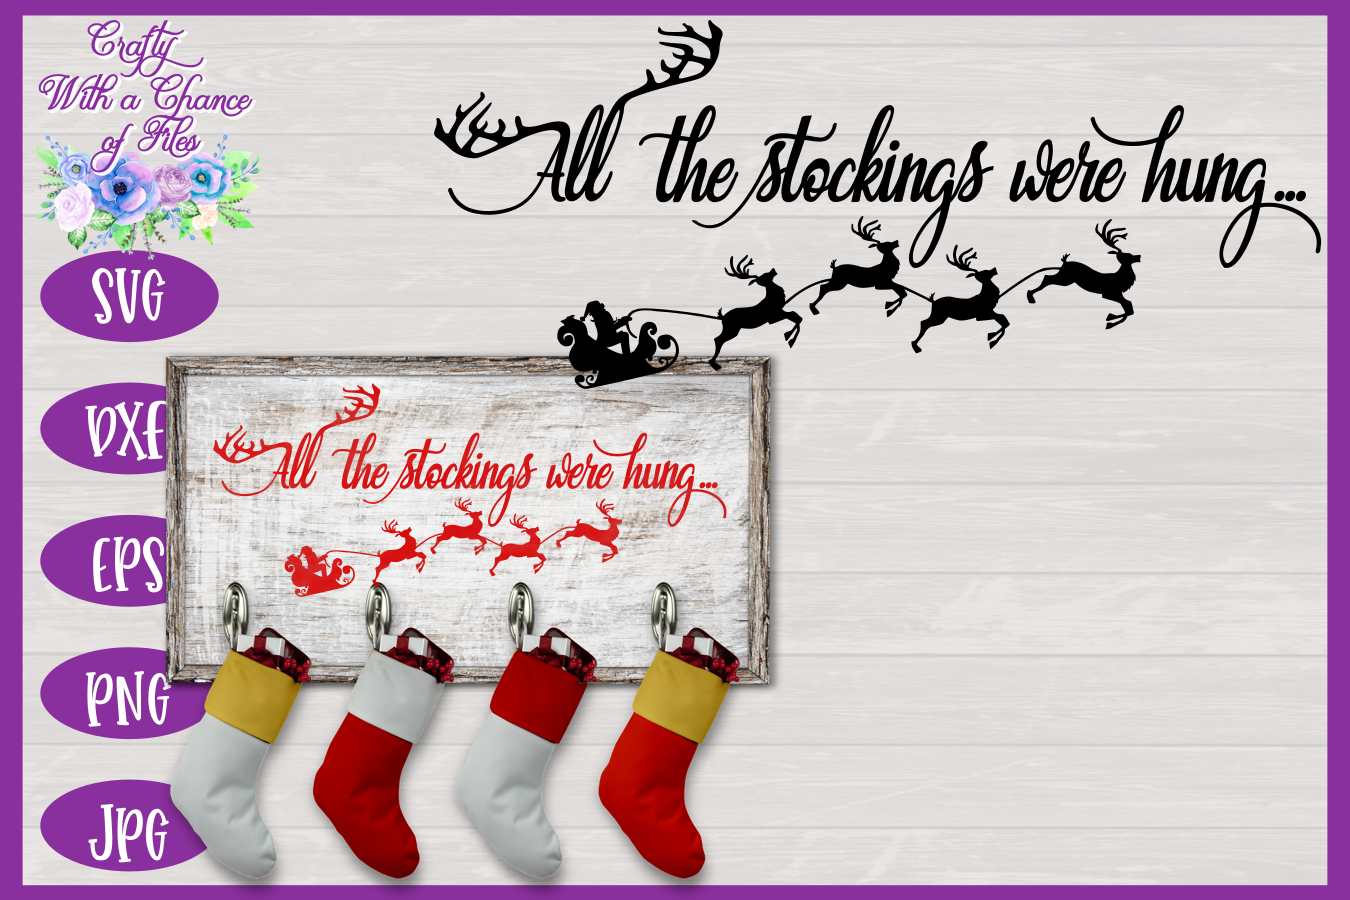 Christmas SVG - Stockings Were Hung Holder Design example image 1